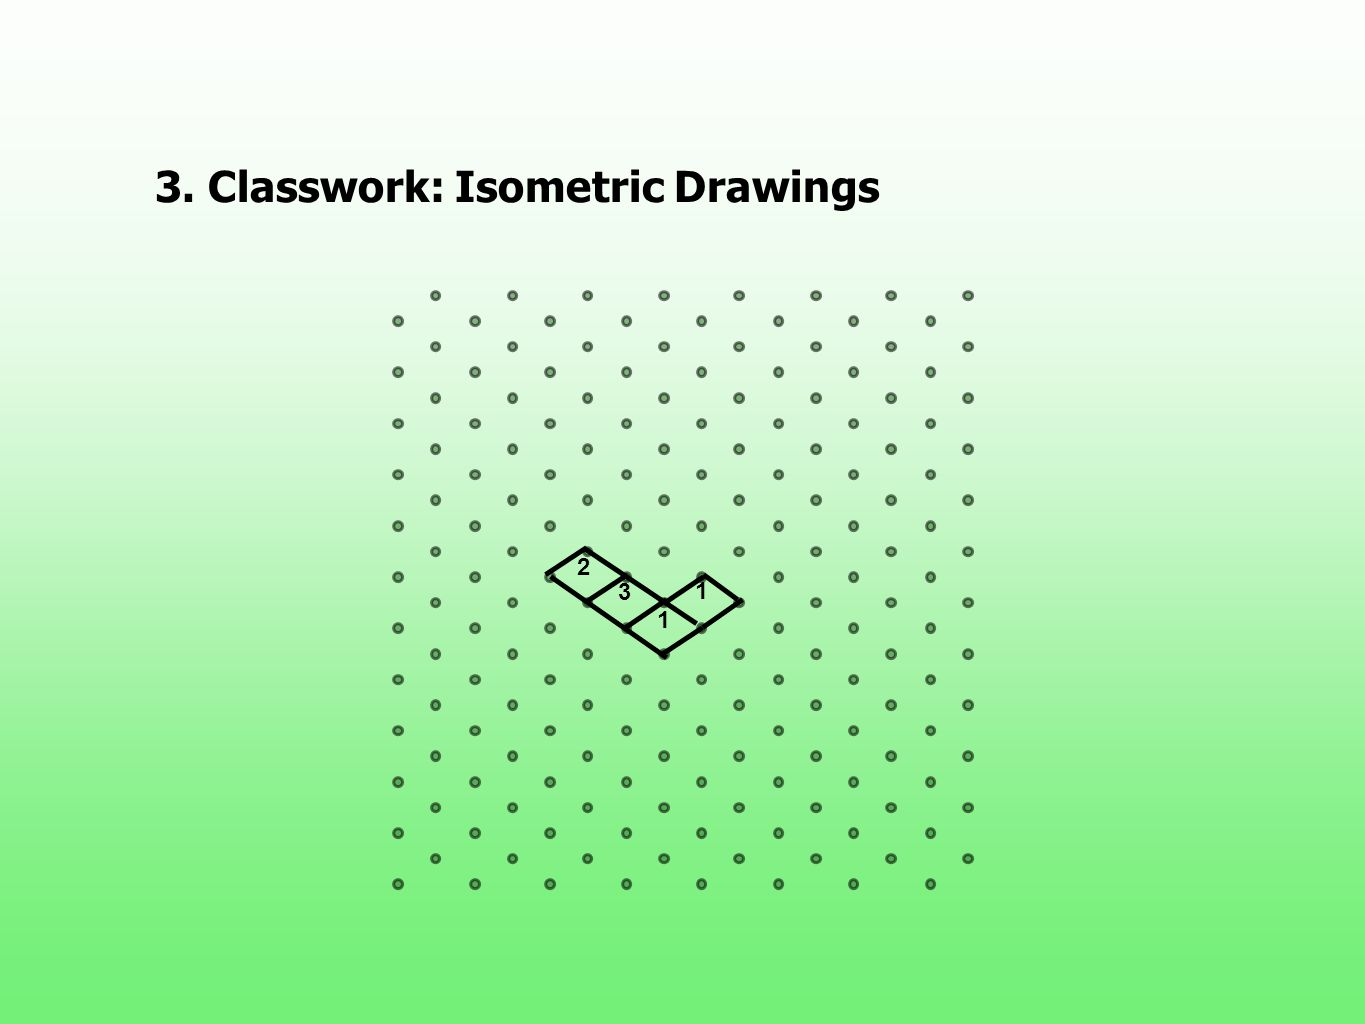 2 3 1 1 3.Classwork: Isometric Drawings